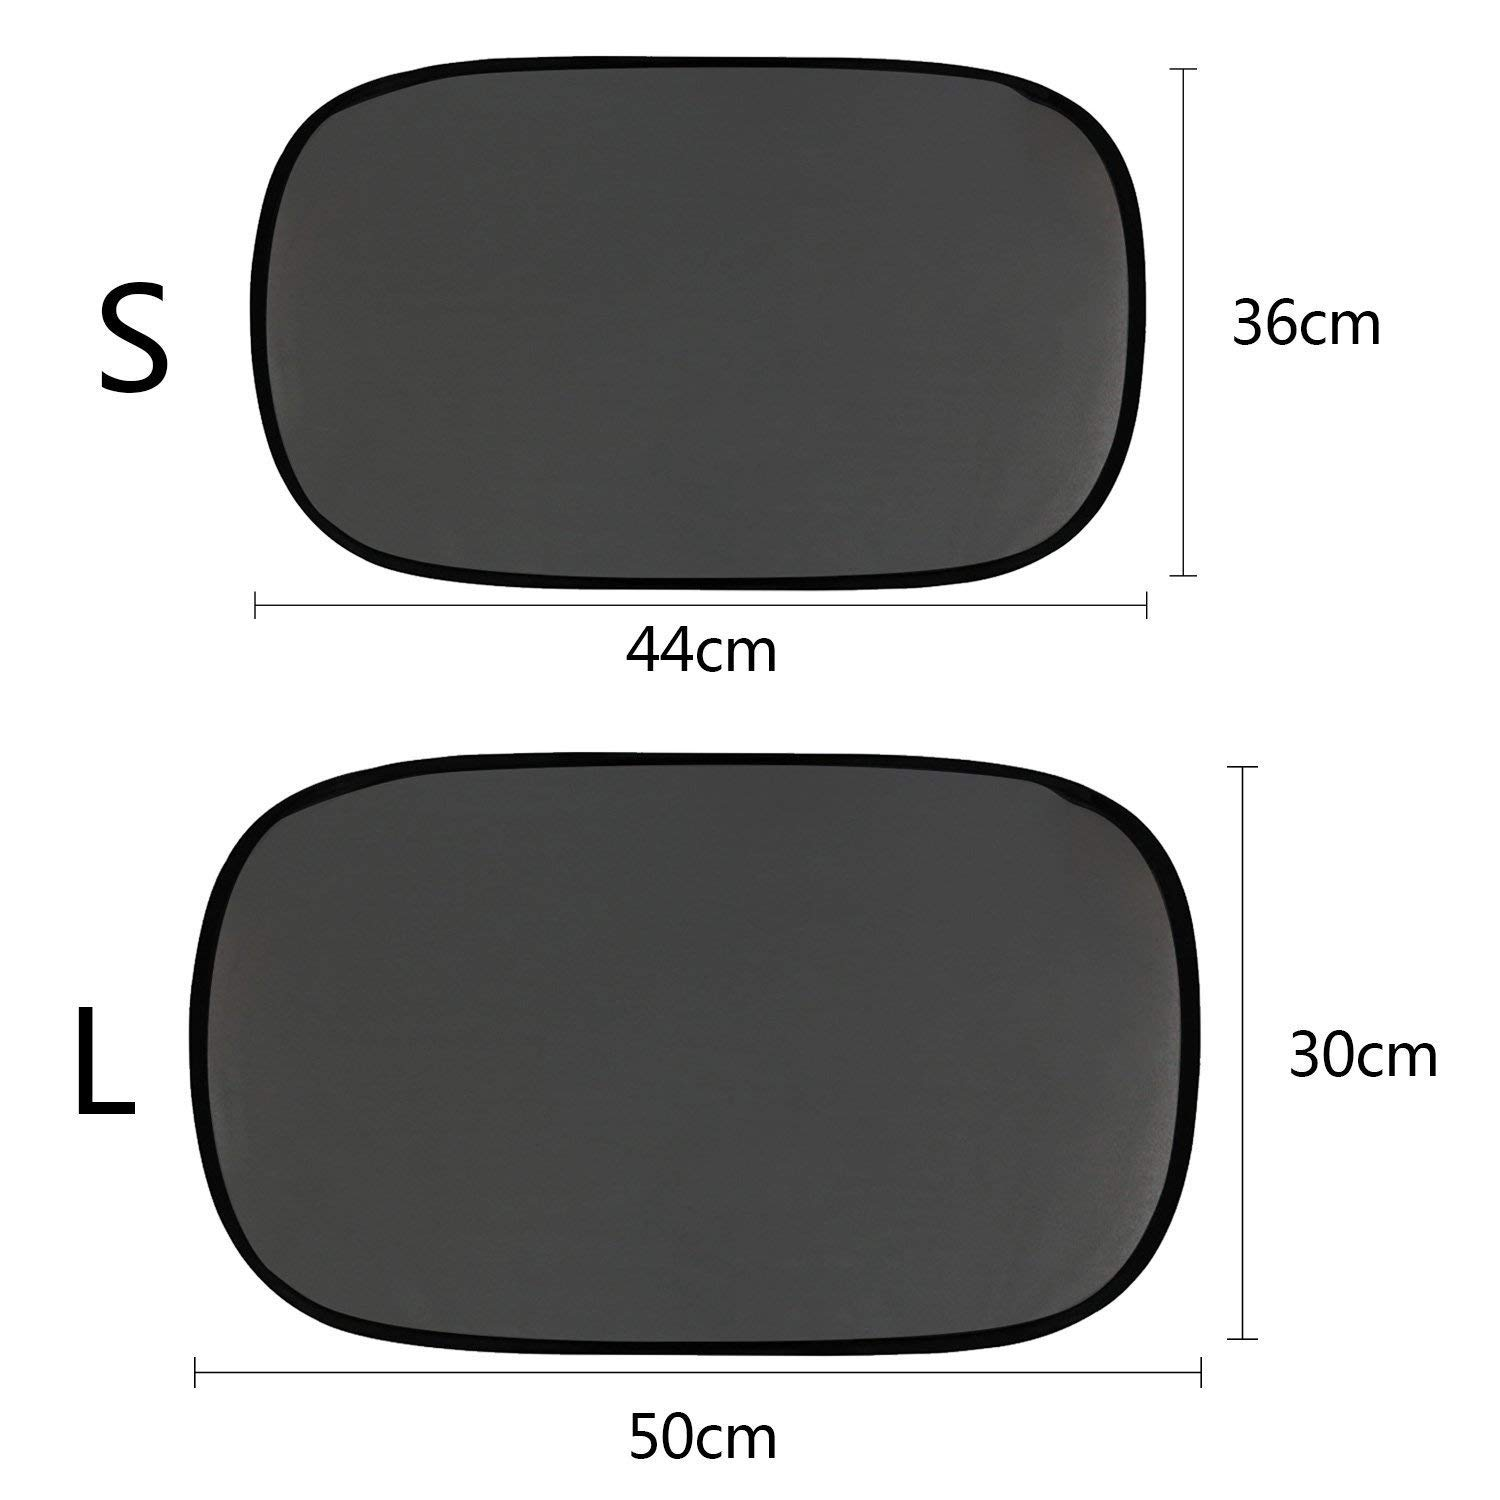 50 * 30cm // 44x36cm Large SAVORLIVING Car Window Shade UV Ray Protector Sunshade for Side//Rear Window Easy to Install Mesh Material Best Protection for Your Baby//Kids//Pets 2 Pack